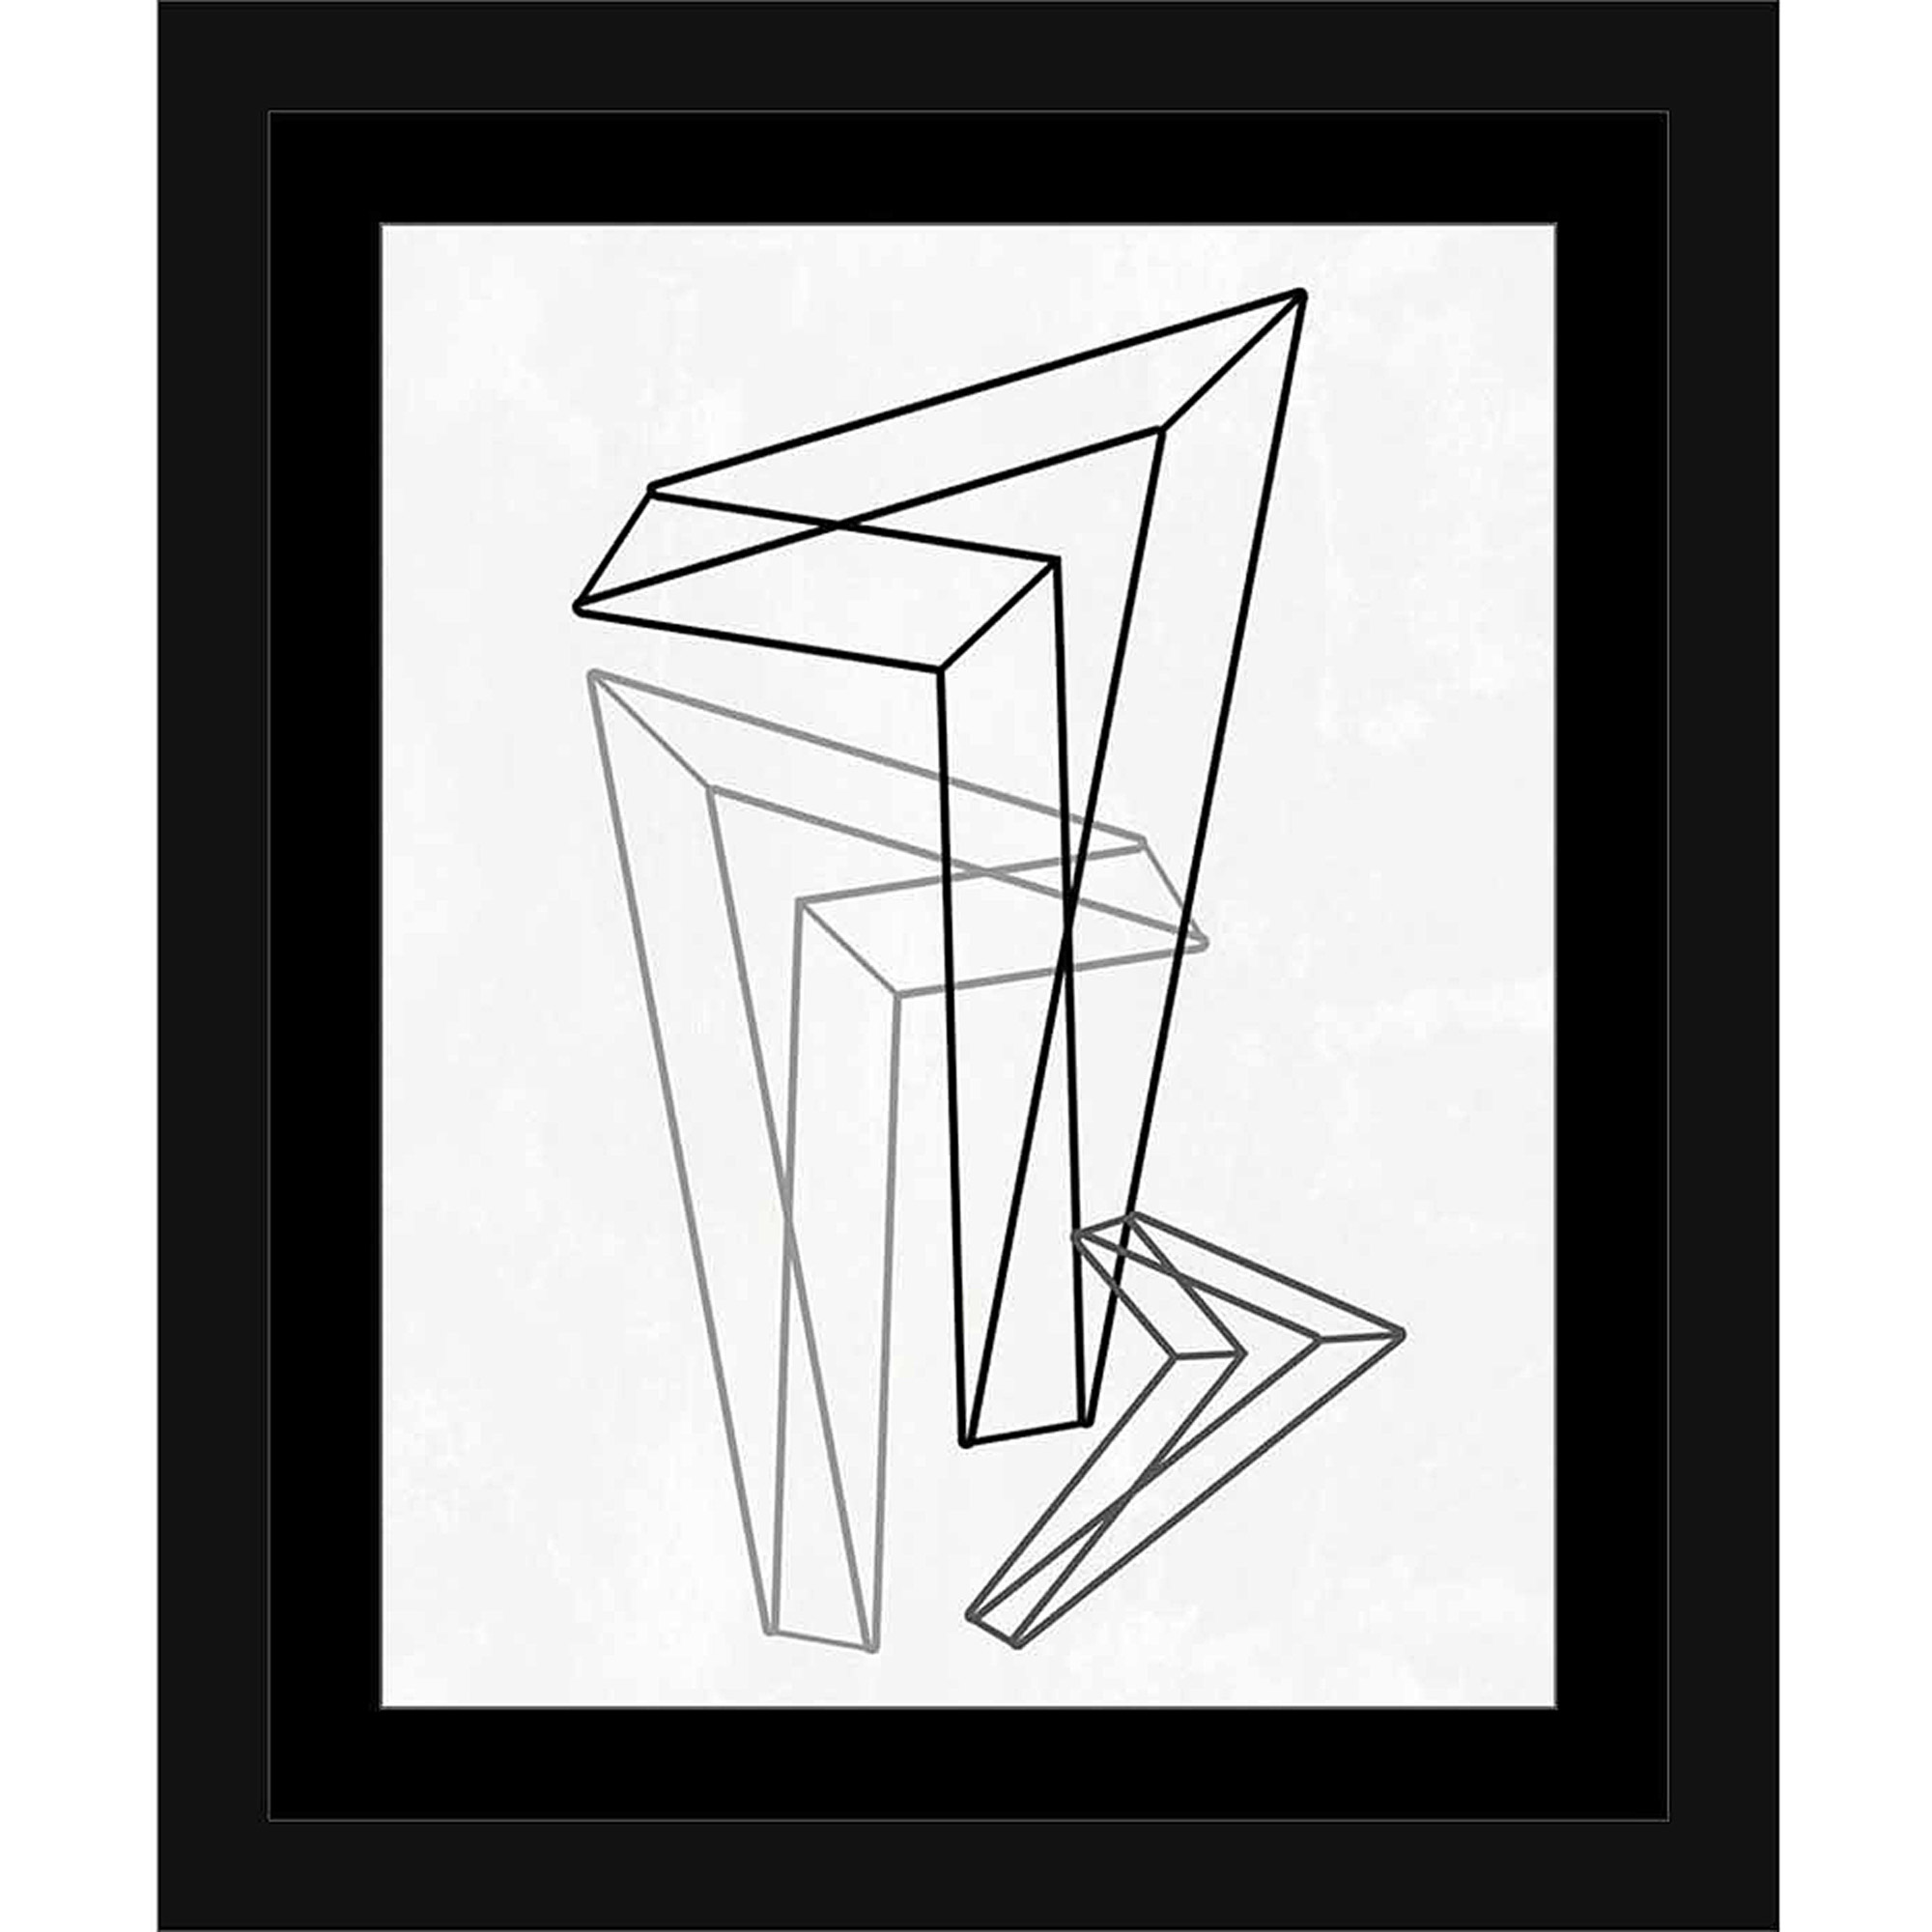 Geometric Triangle Line Drawing Modern Contemporary Trendy Abstract Black & White, Framed Canvas Art by Pied Piper Creative